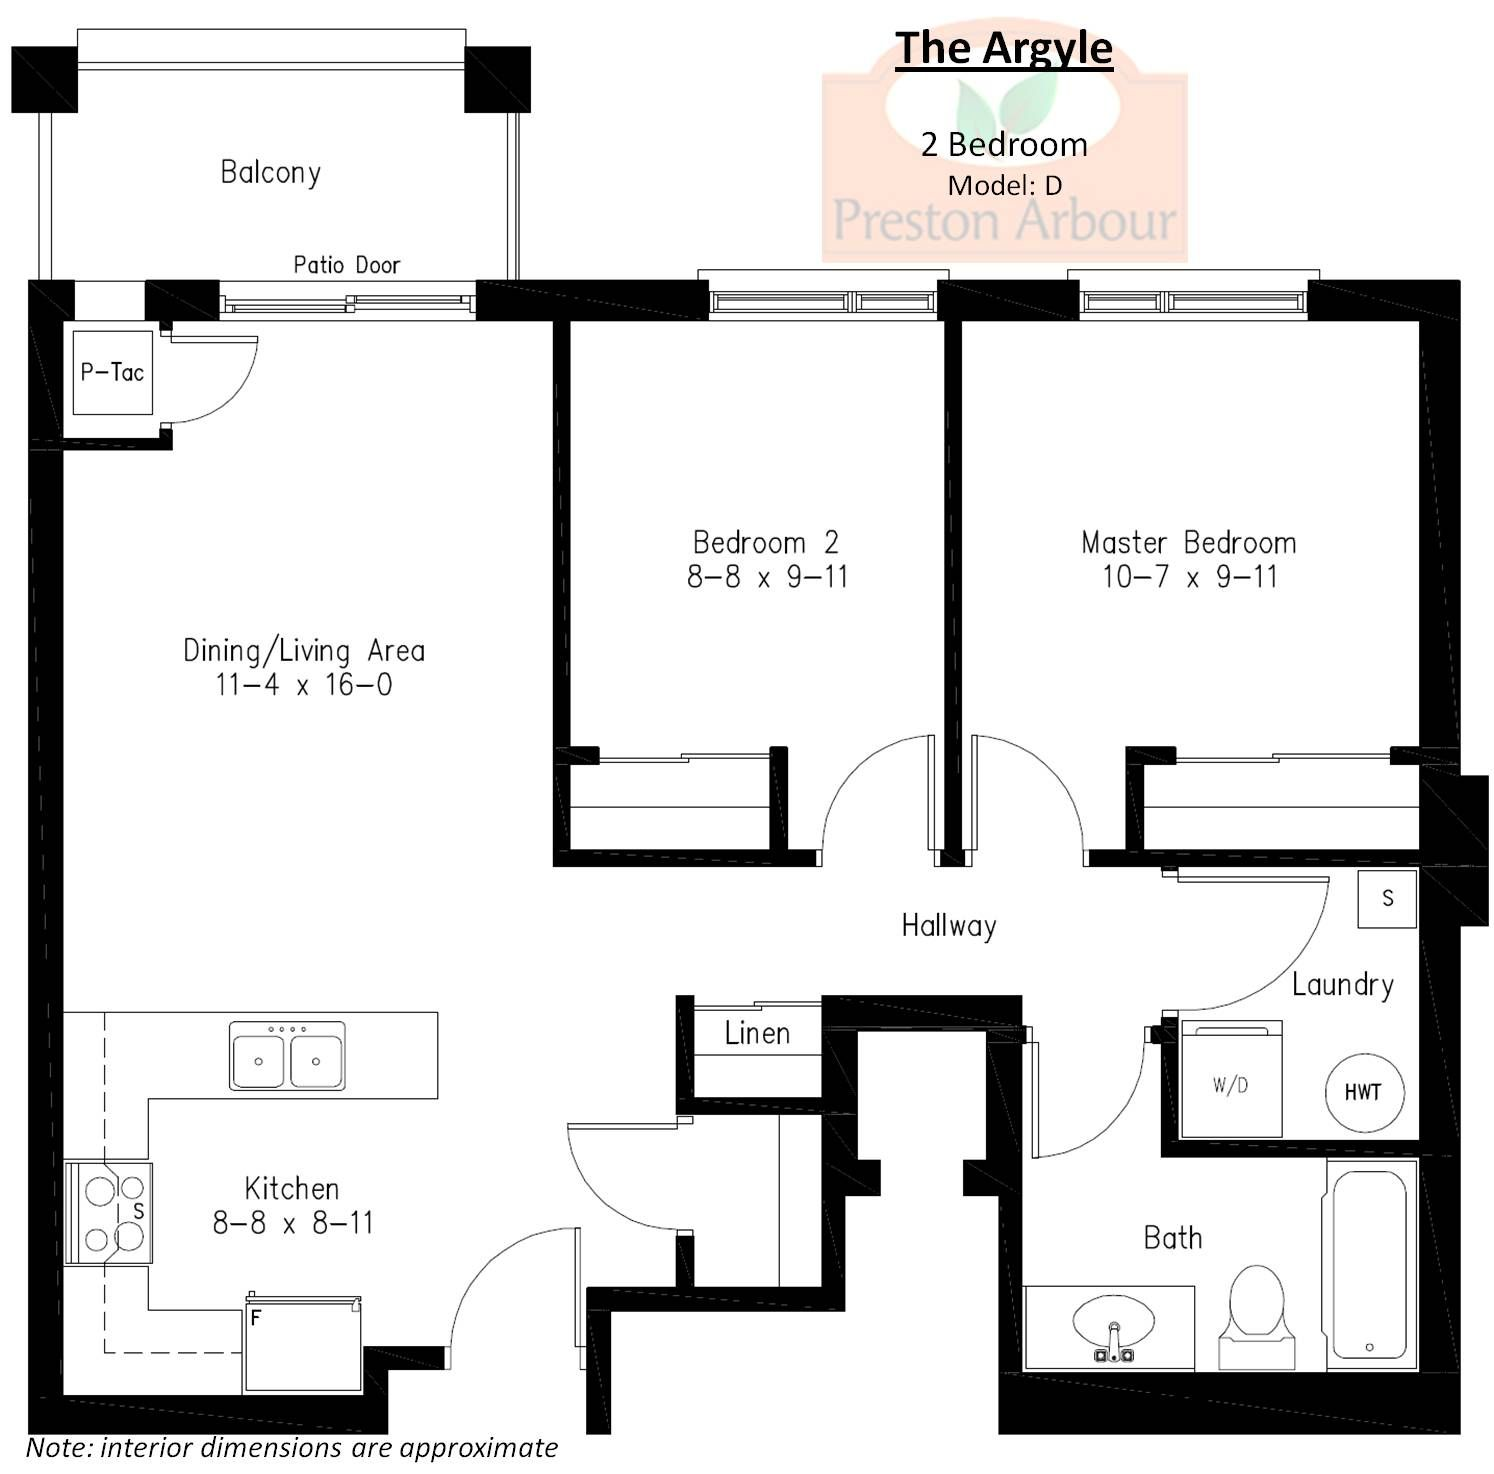 Free House Floor Plan Design Software Blueprint Maker Online Free Basic House Plan Design Software